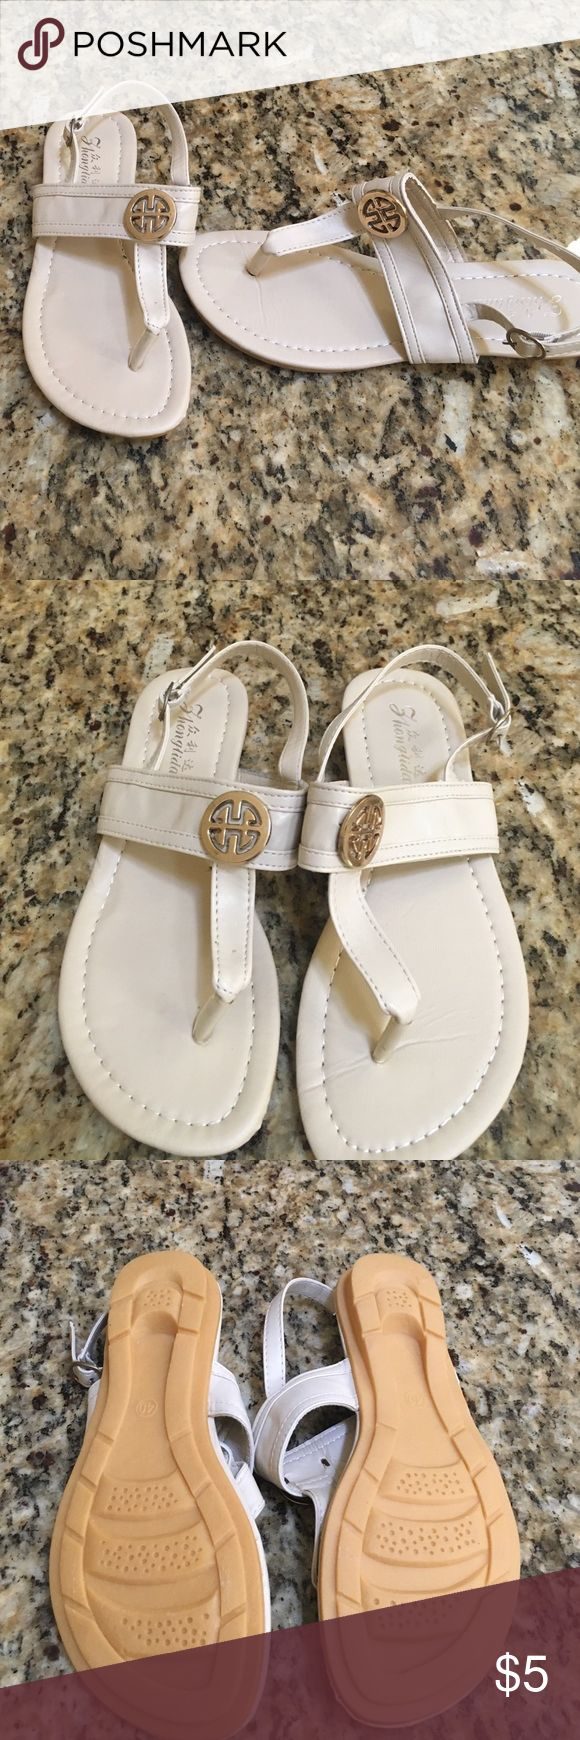 Cream sandals, brand new without tag, Size 7 No name brand. Made in China. Size 7 pleather material. Cream color Shoes Sandals